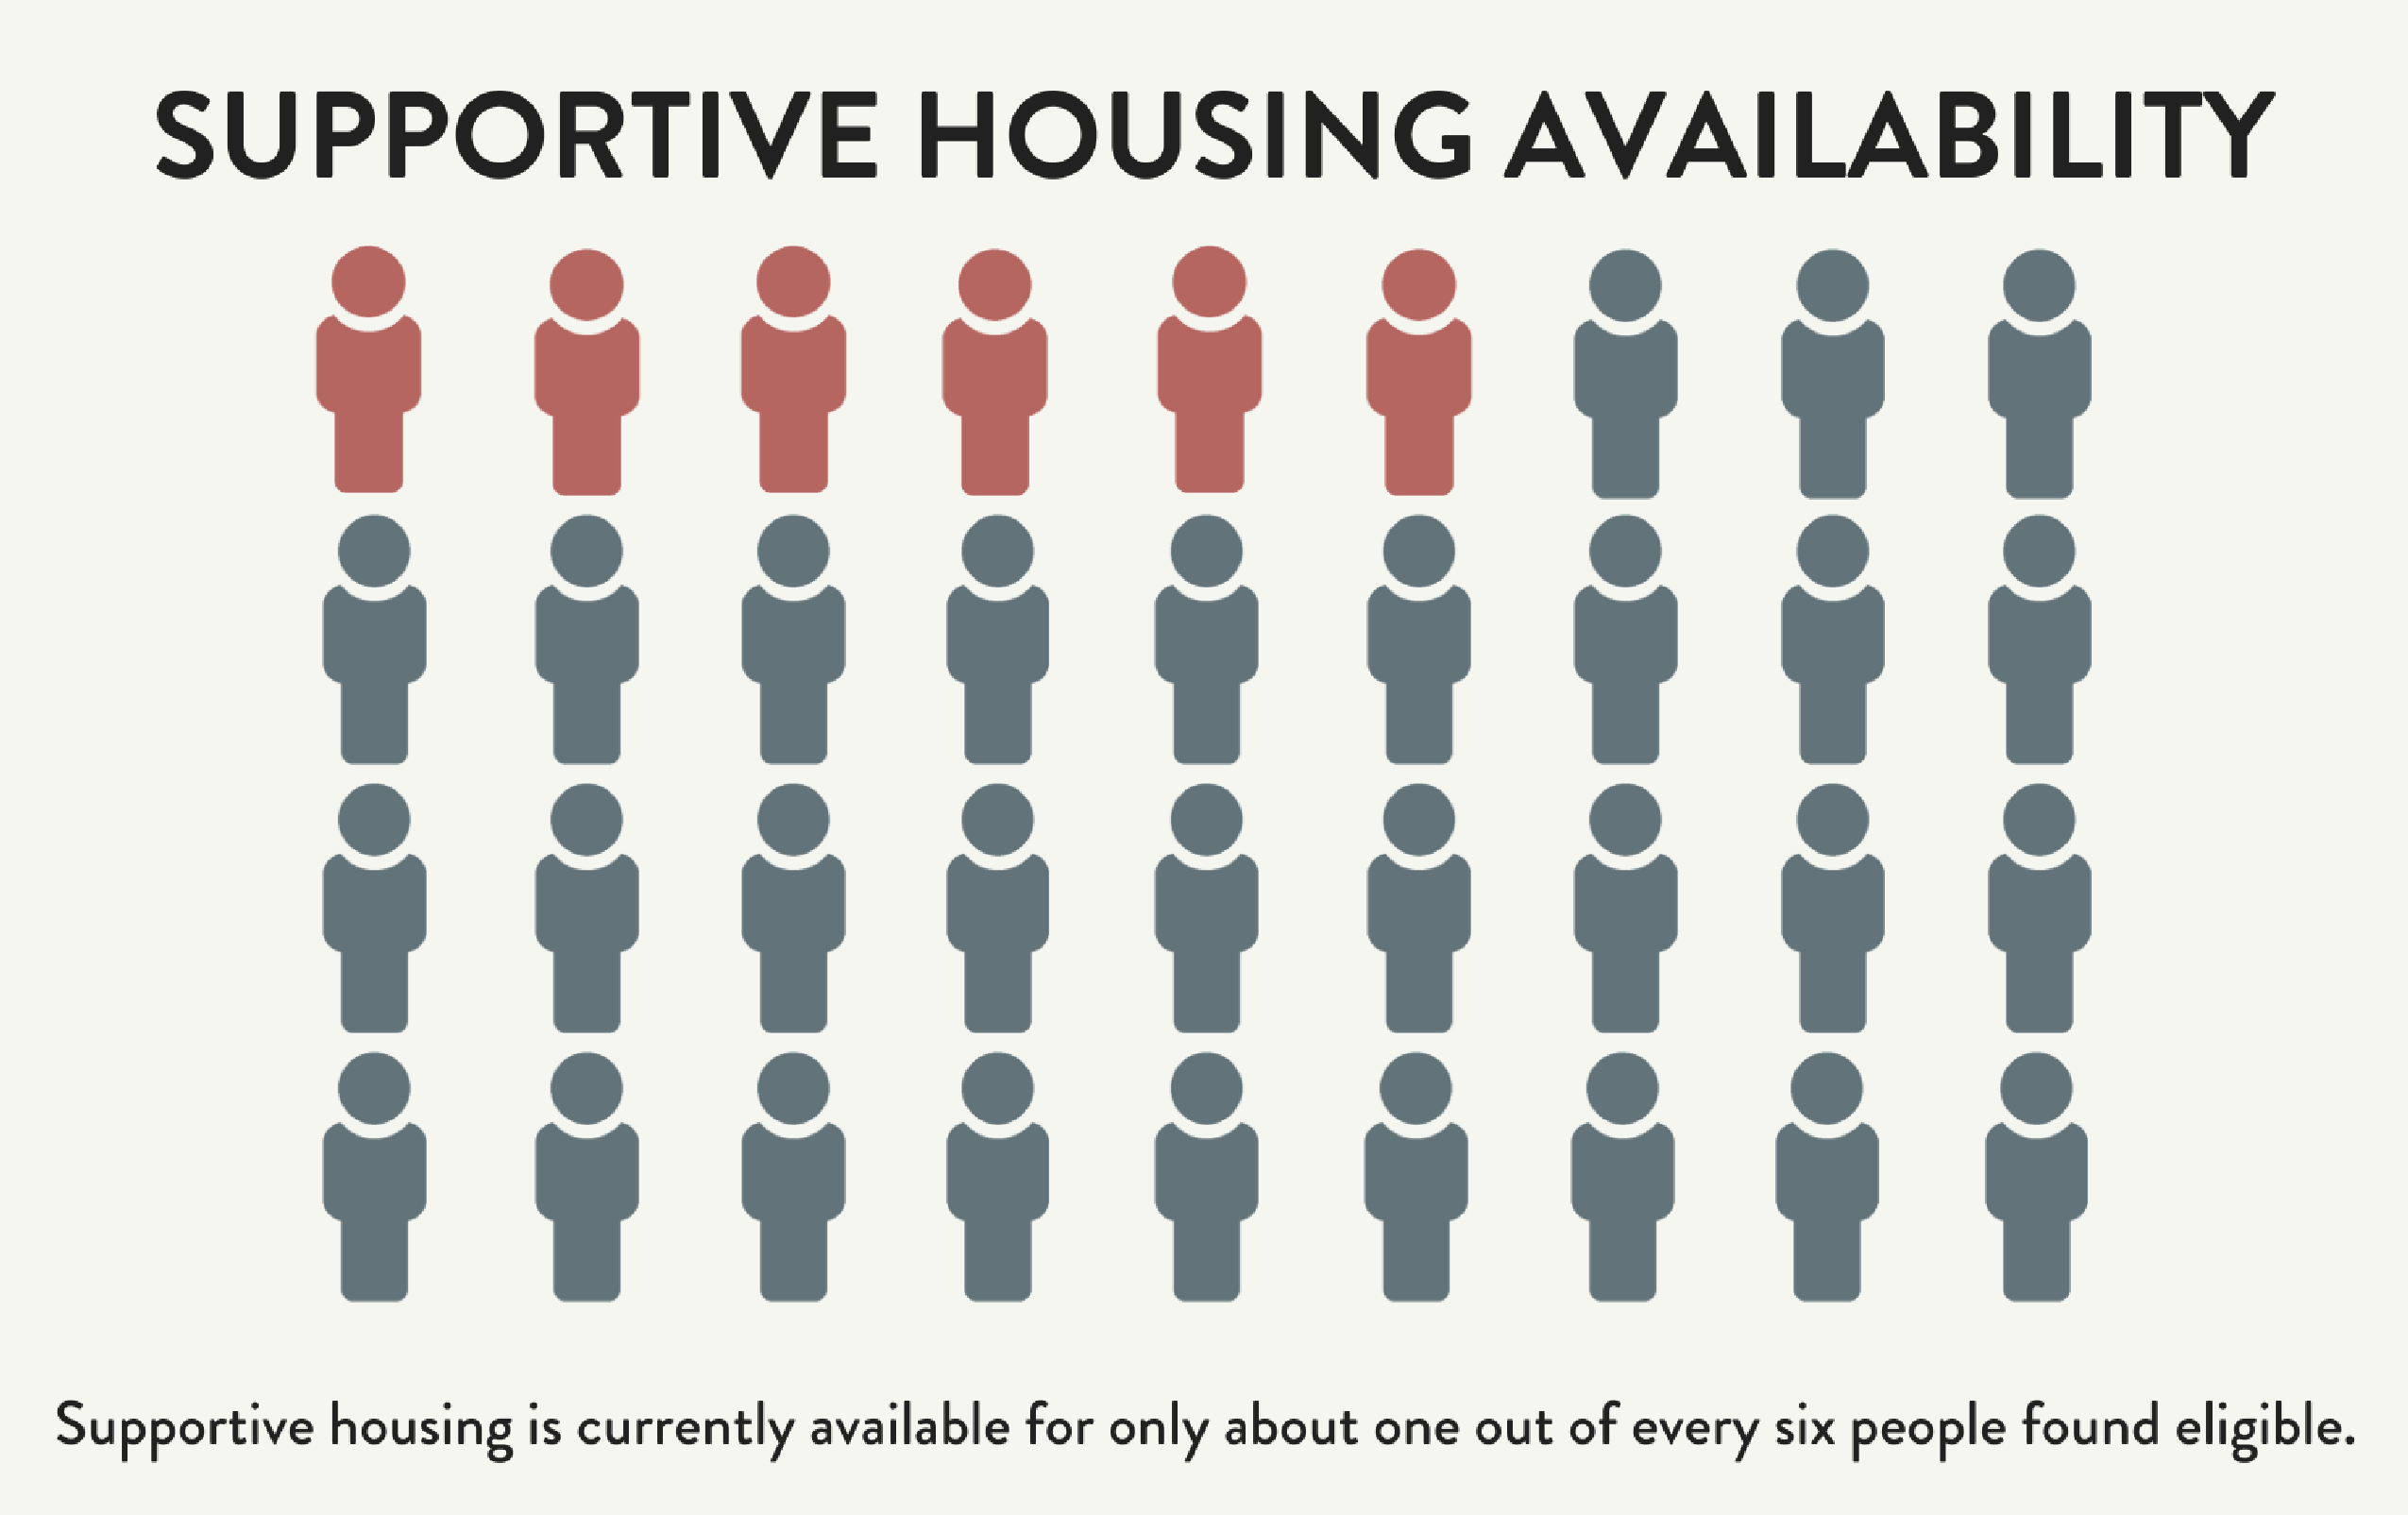 Supportive Housing